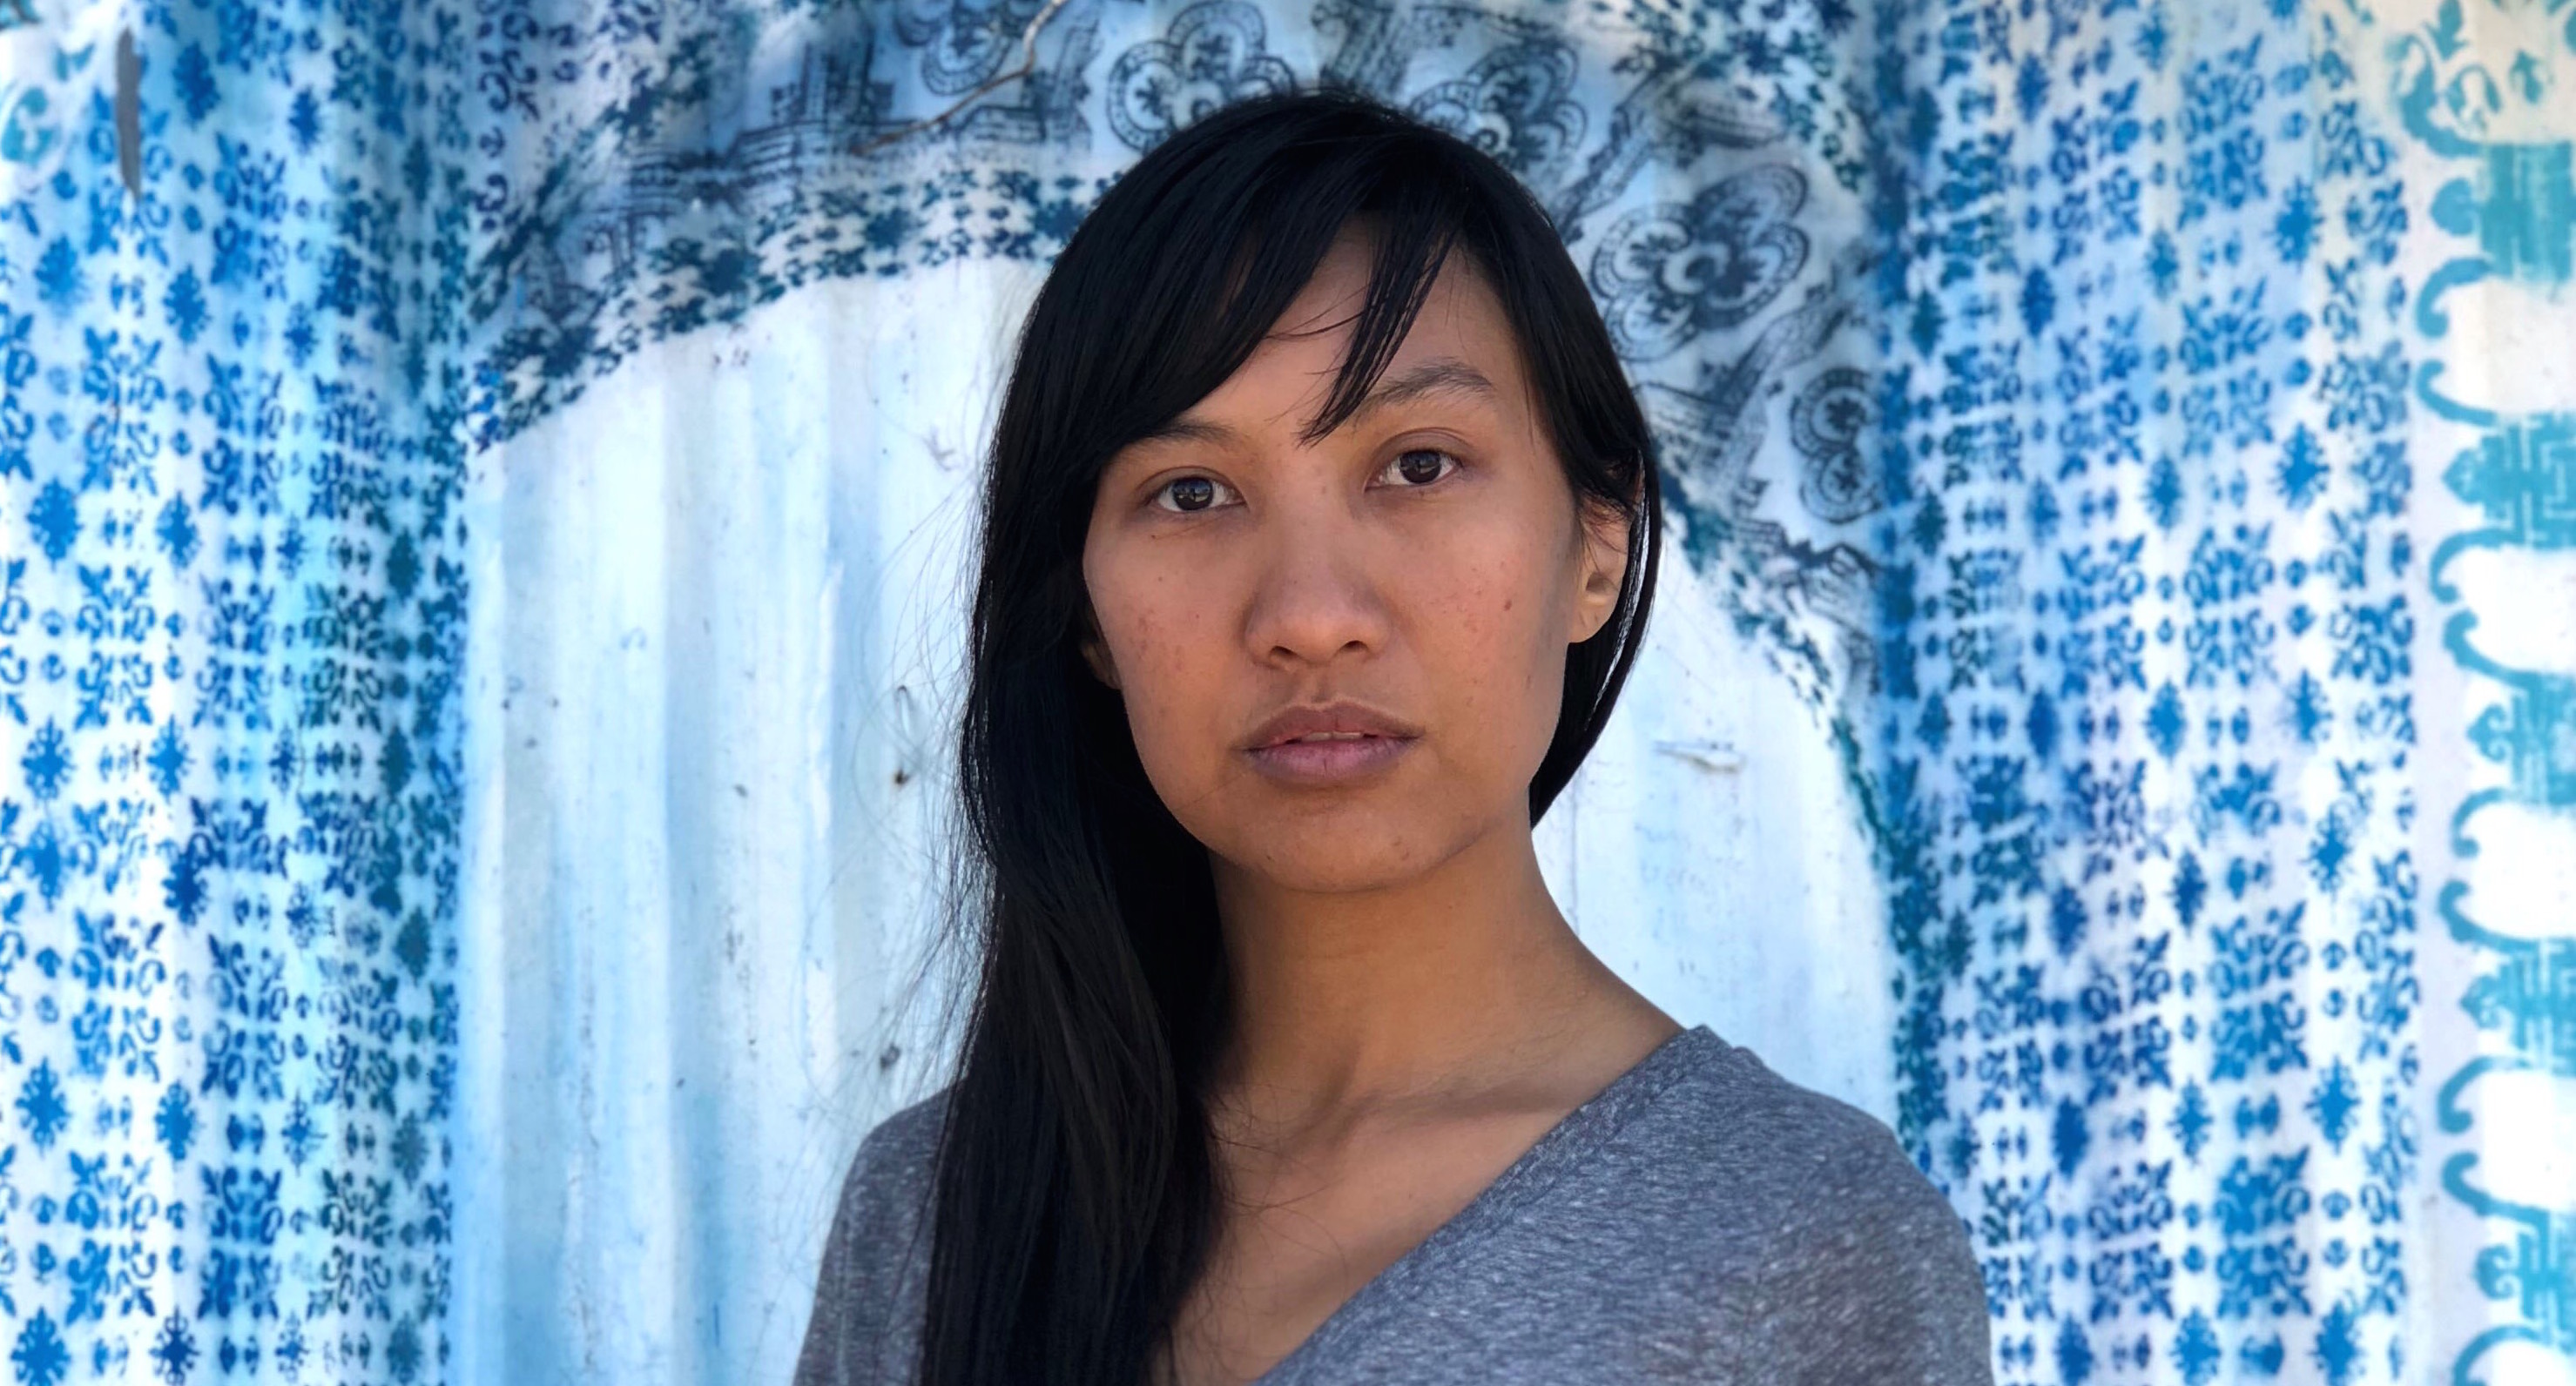 A Filipina American woman with long black hair and bangs looks into the camera for her portrait.